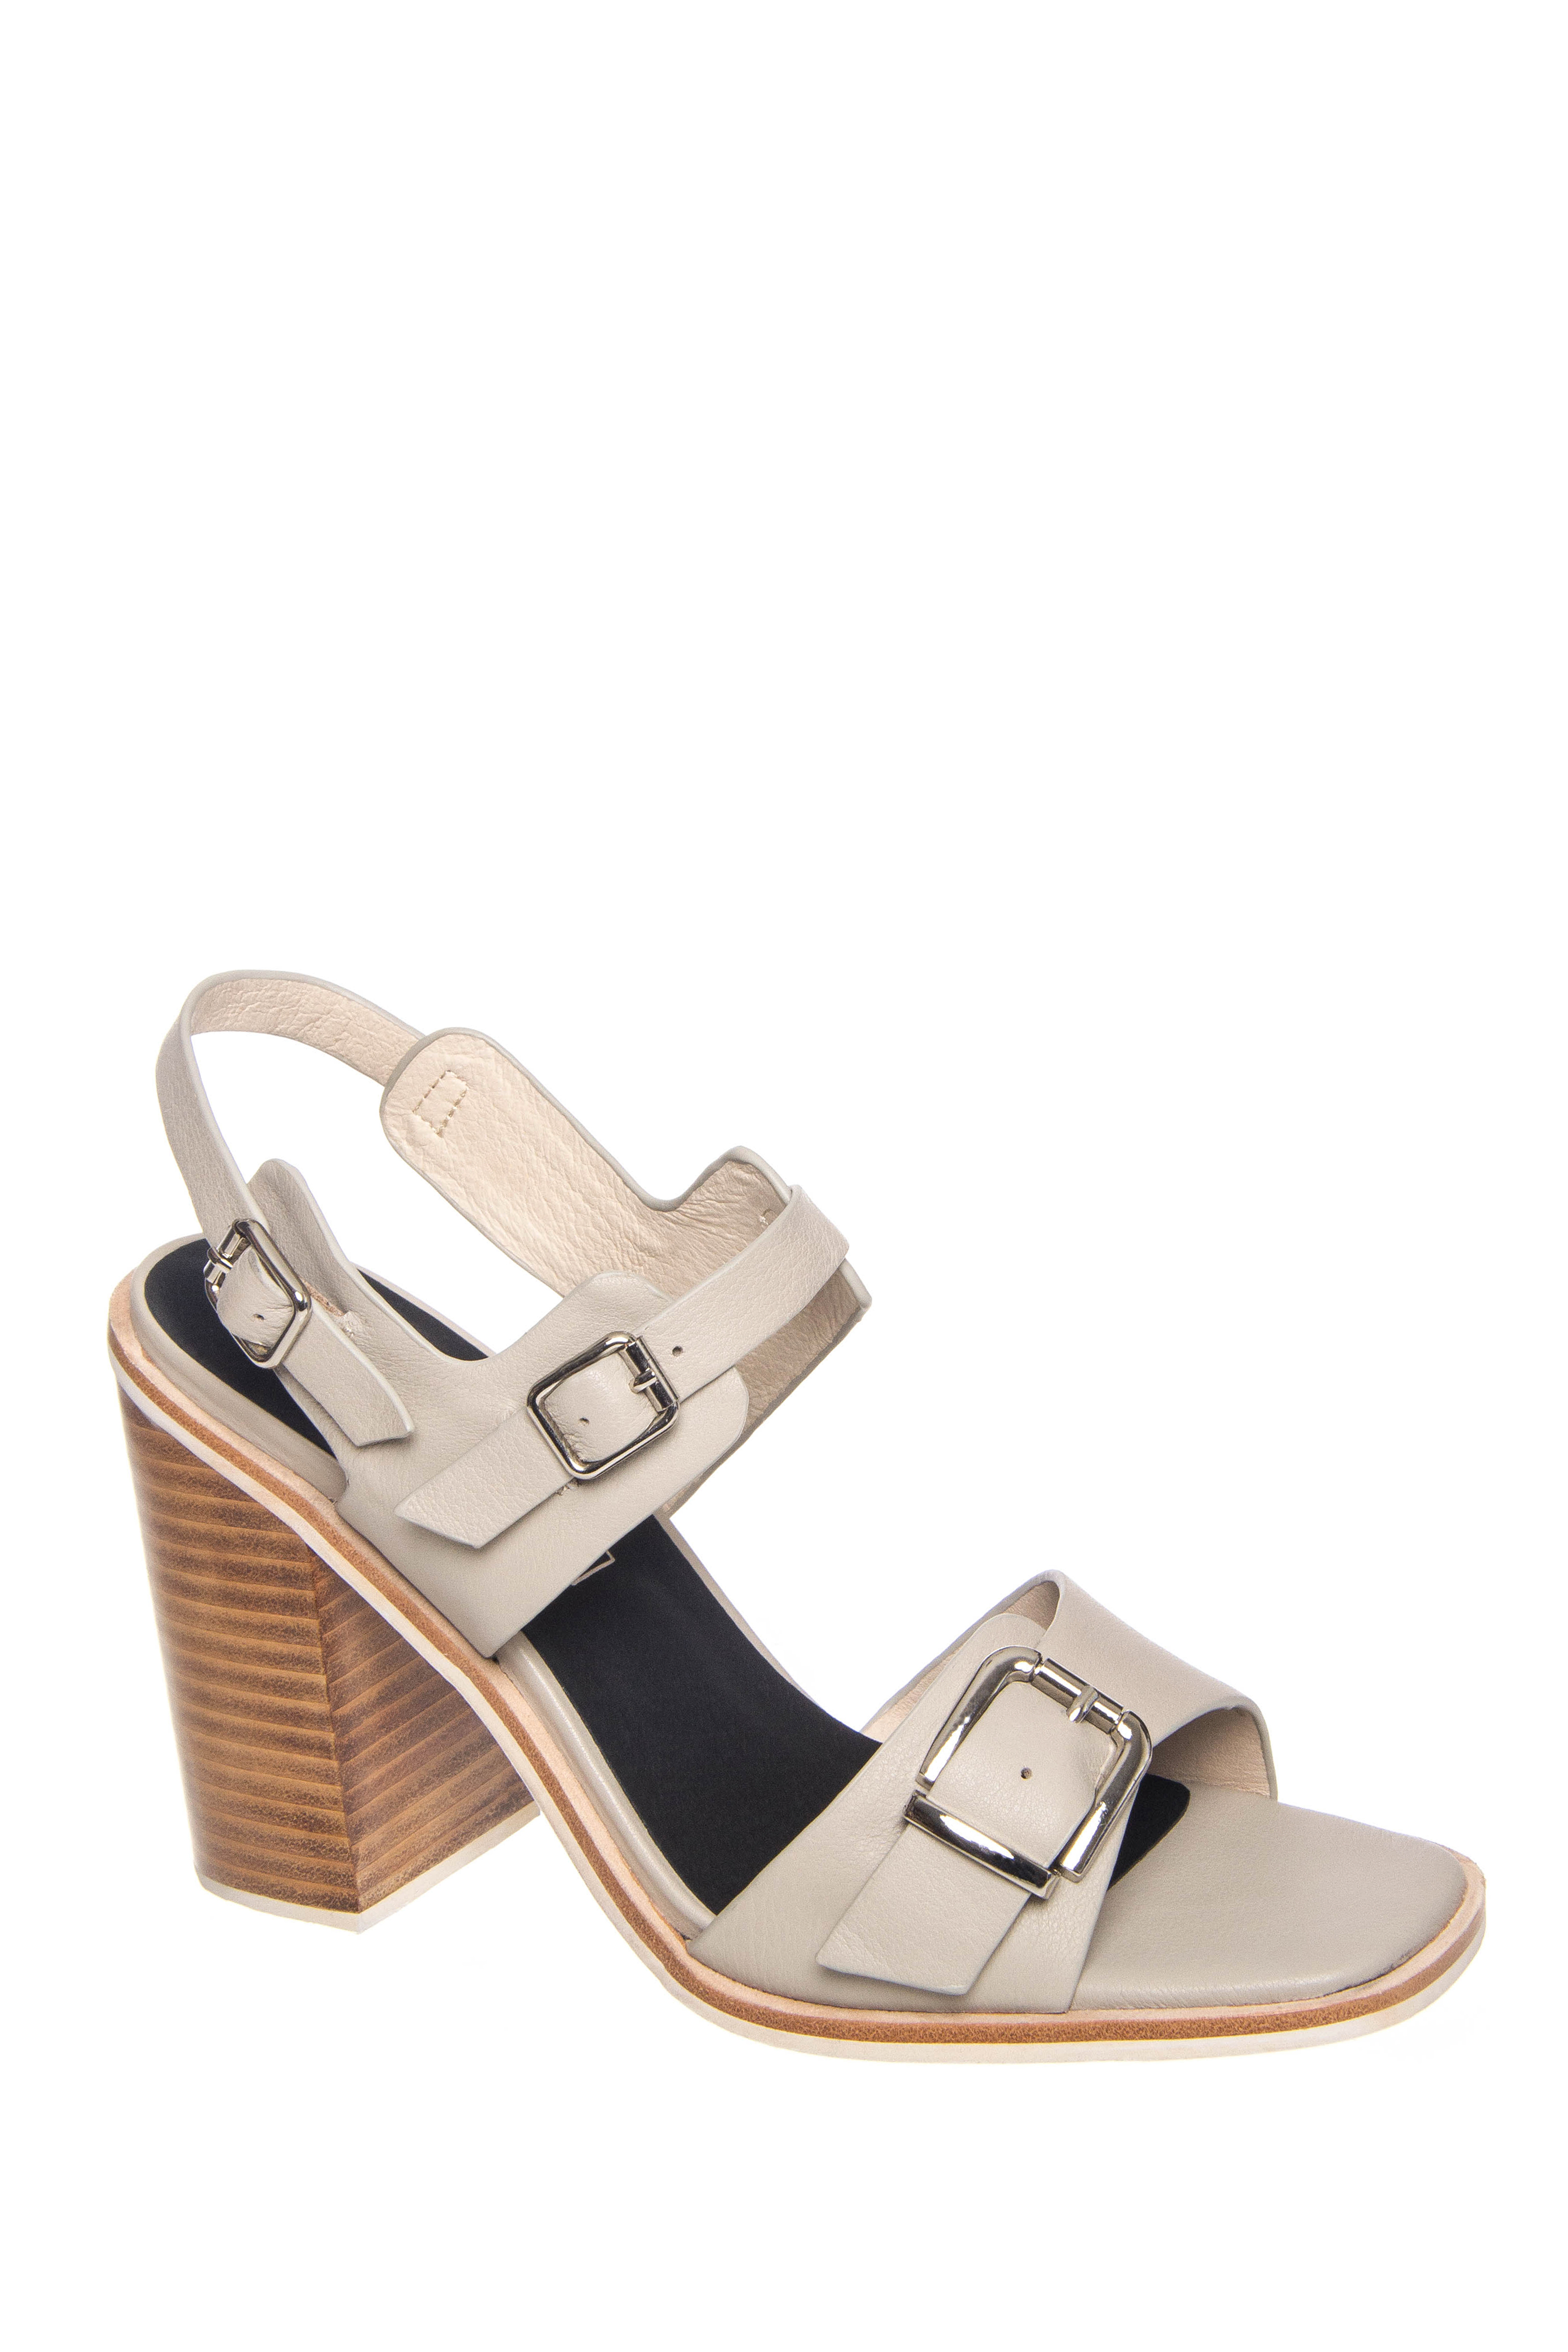 Sol Sana Gia High Heel Sandals